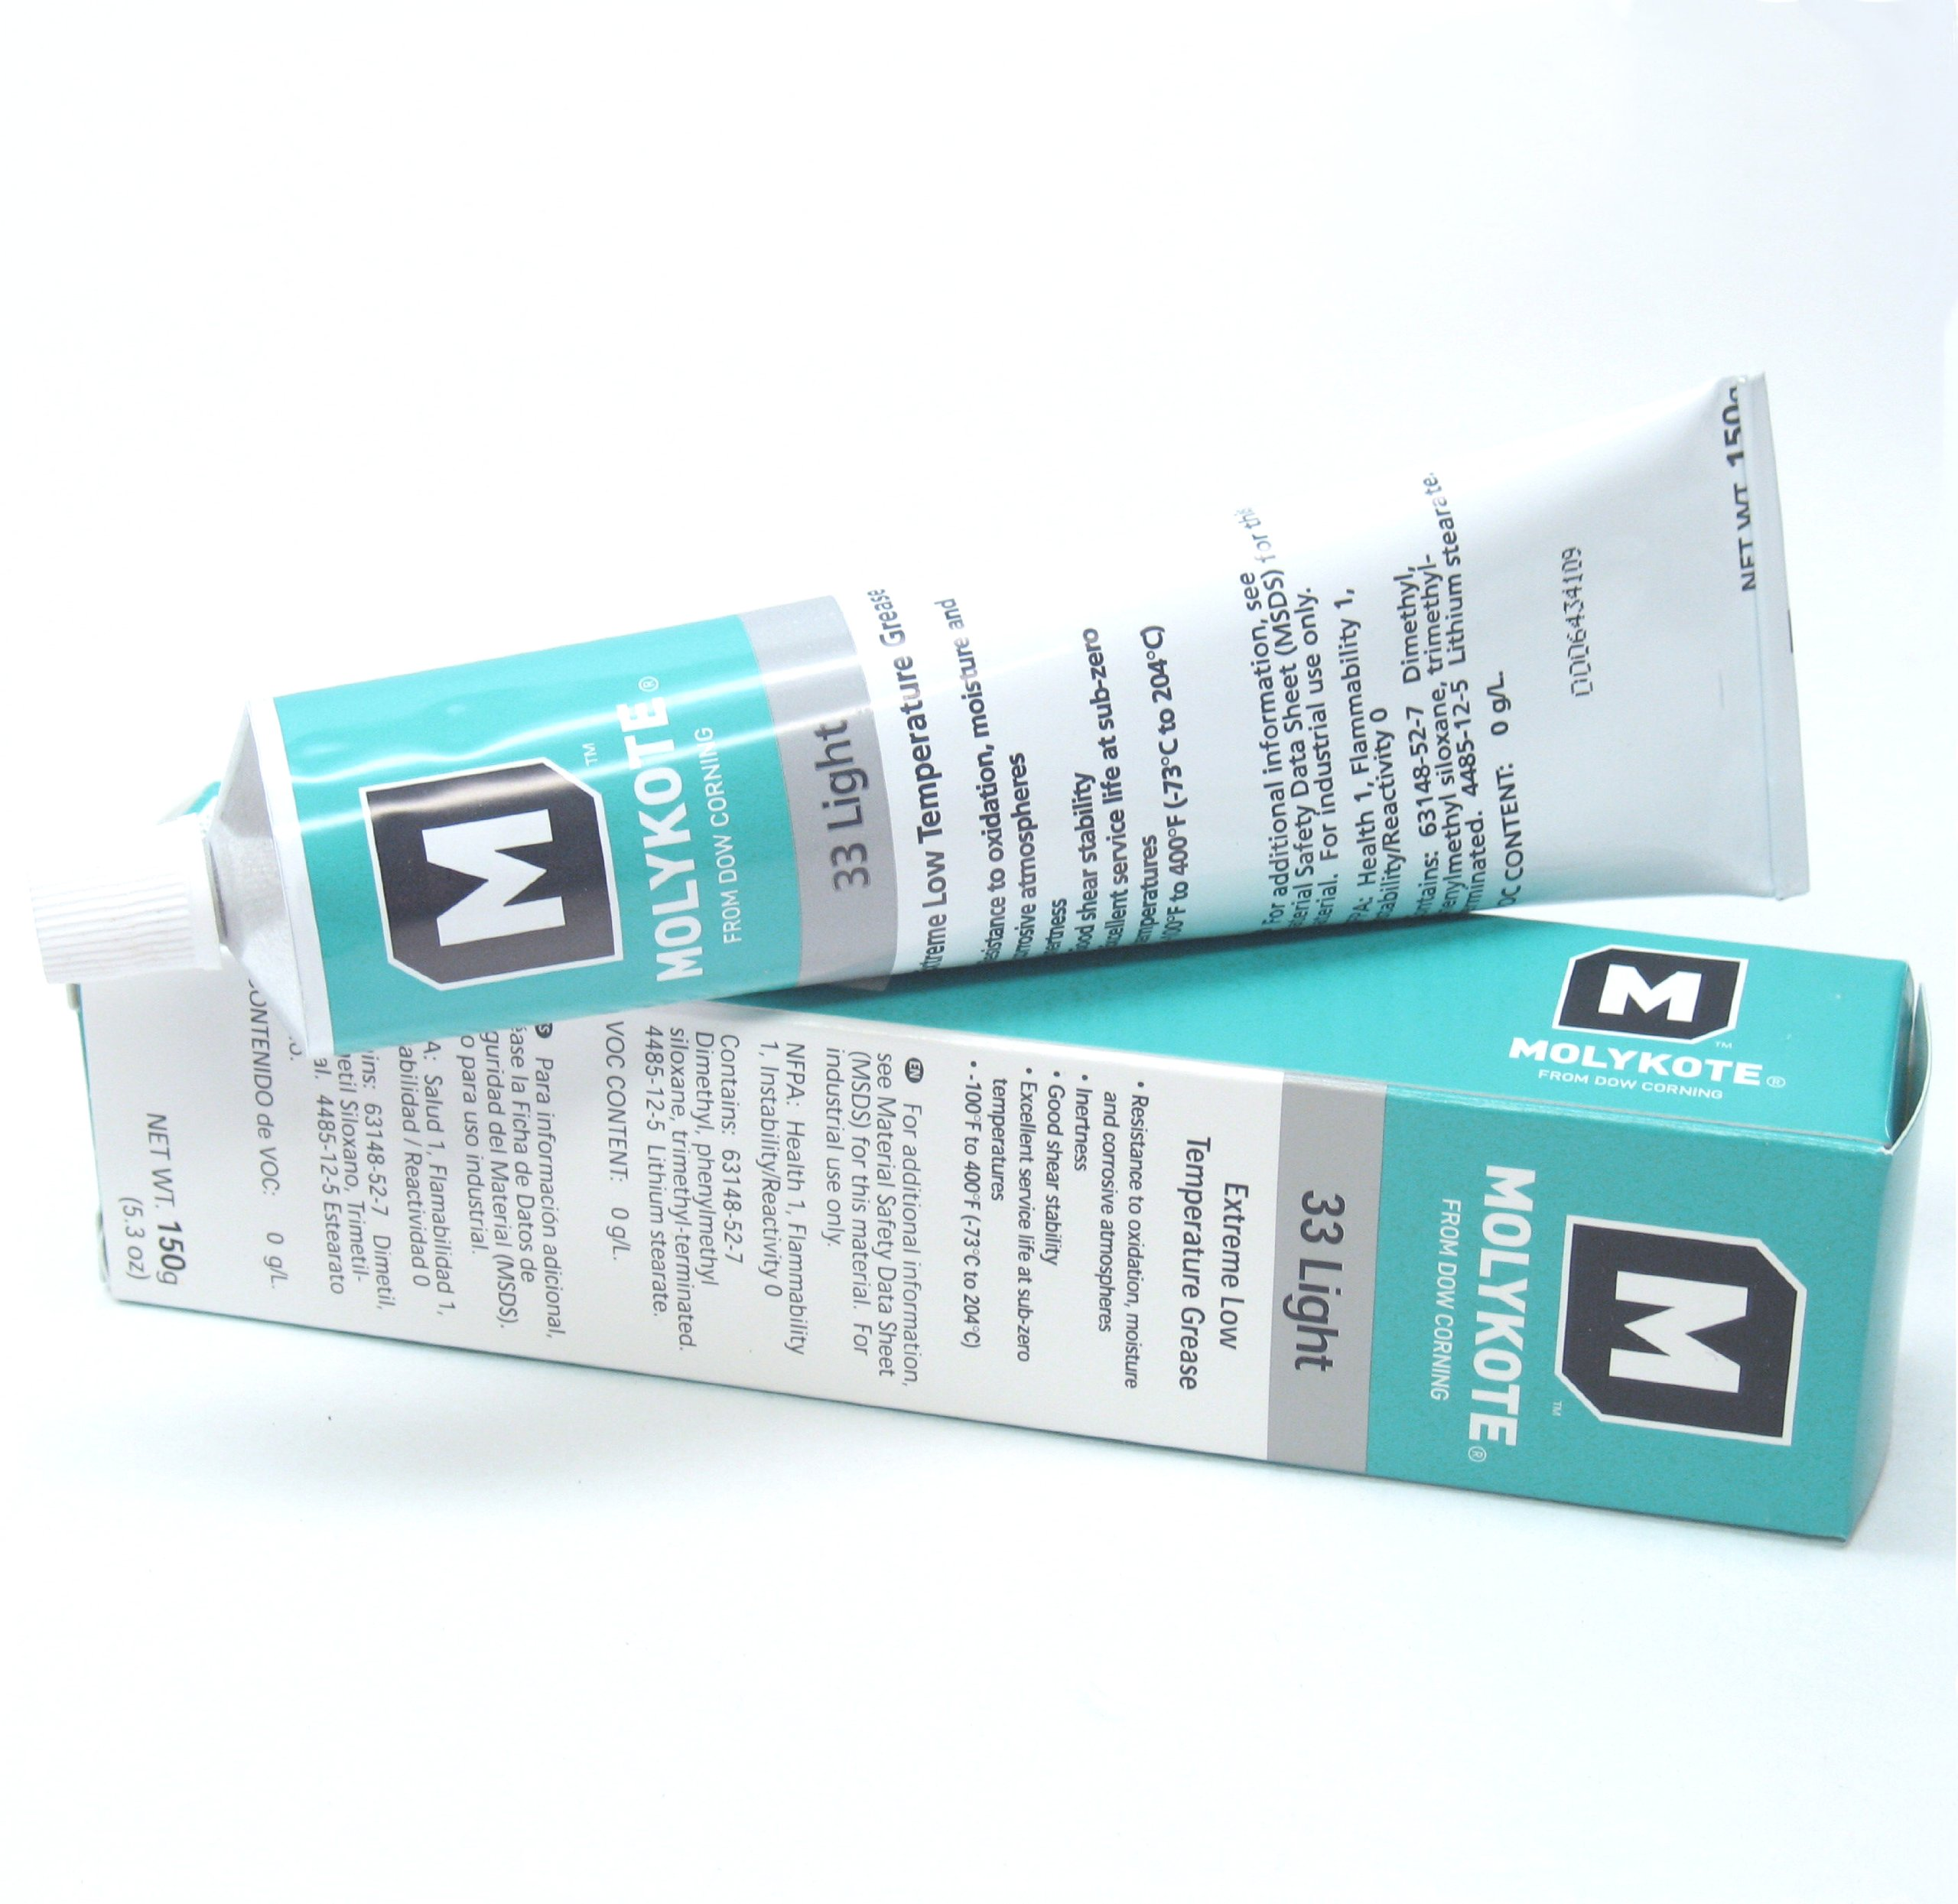 Dow Corning Molykote 33 Light Grease Lubricant 5.3oz 150g Tube by Dow Corning